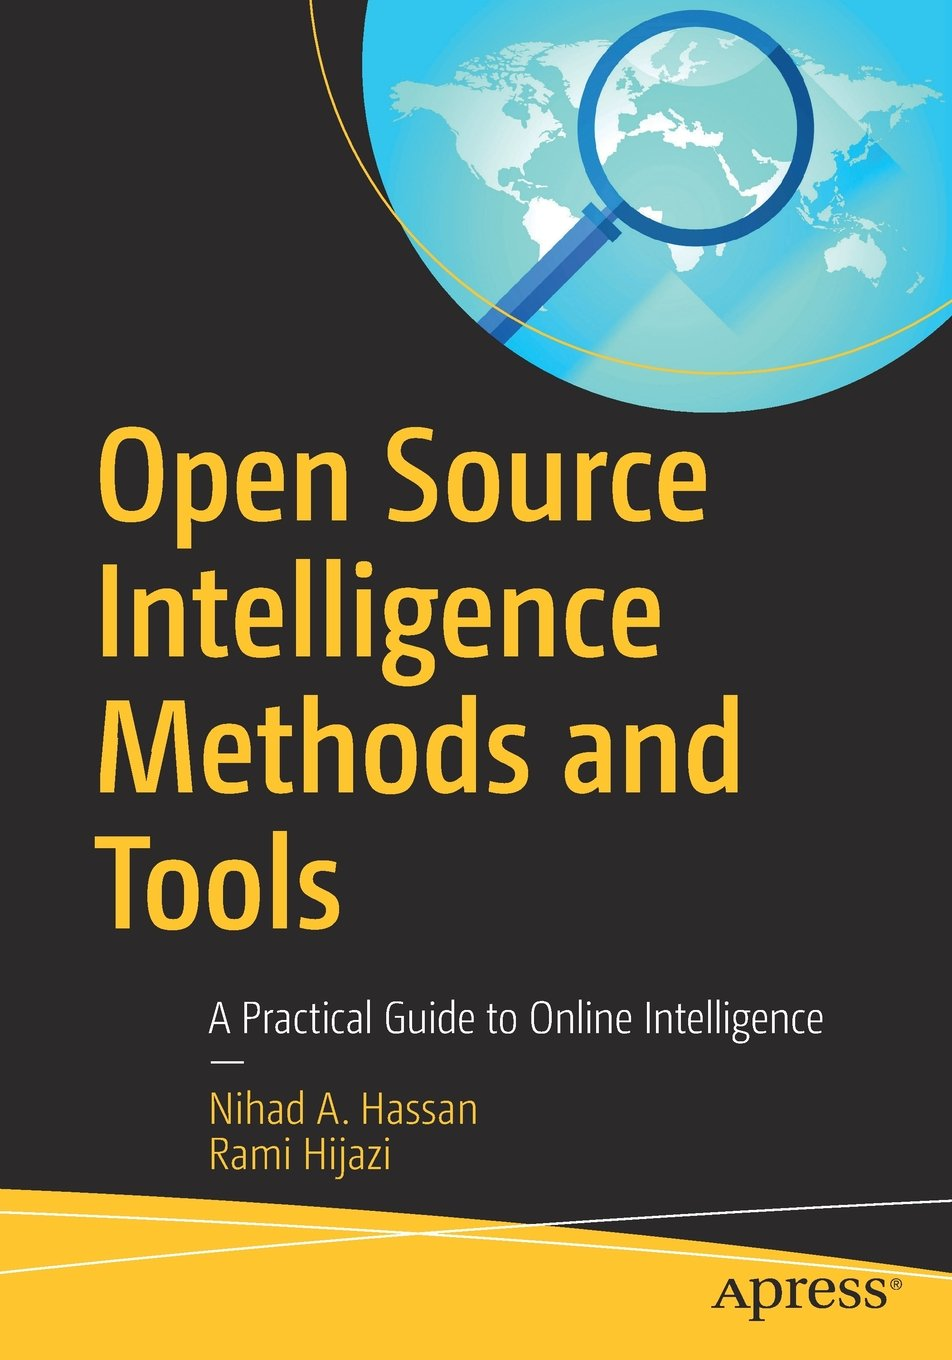 Open Source Intelligence Methods and Tools: A Practical